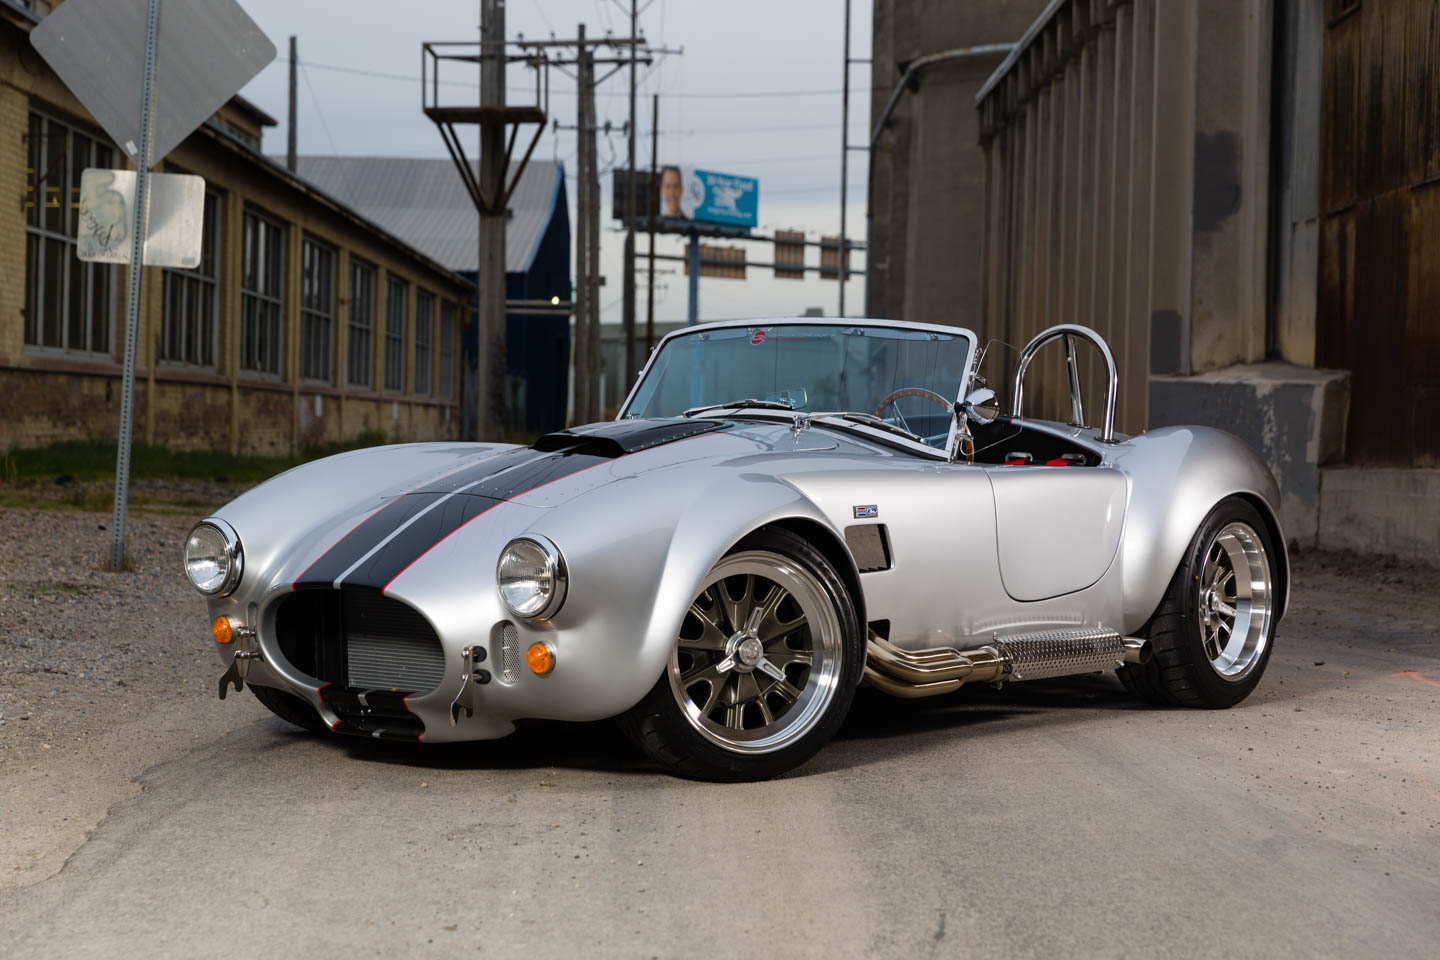 Shelby Cobra Replica Kit Car For Sale